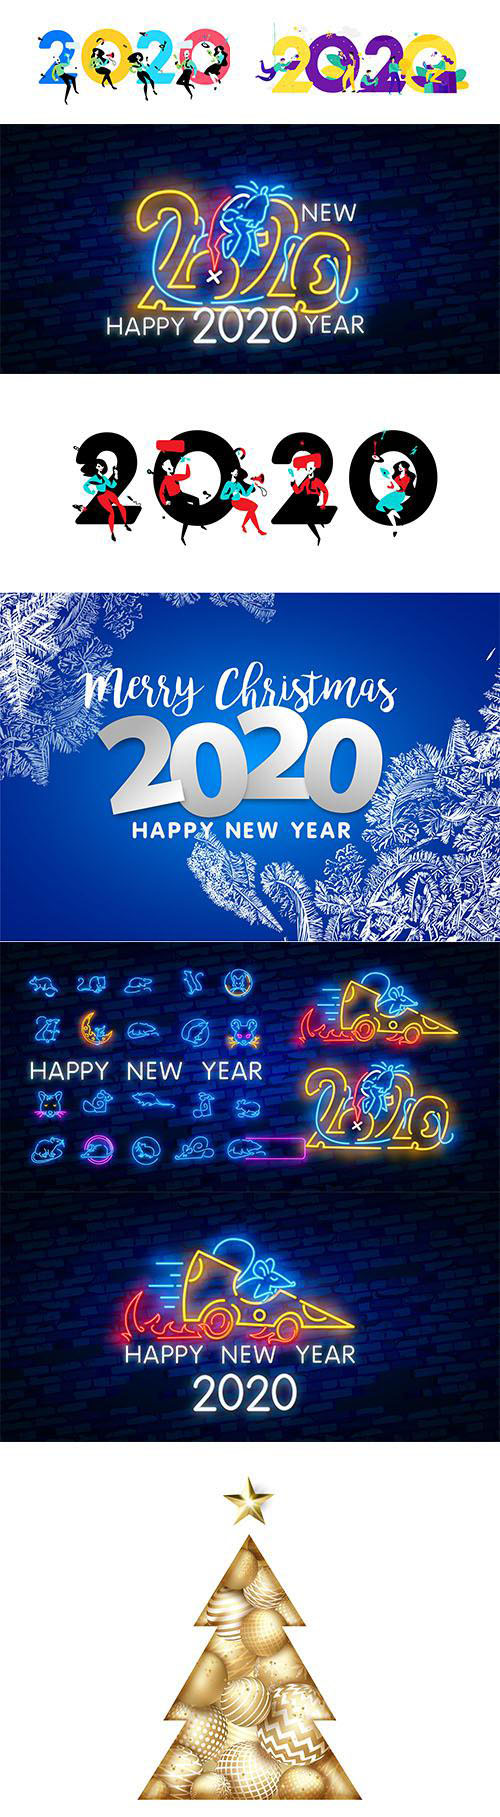 Merry Christmas and Happy New Year 2020 Illustrations Vector Set 1